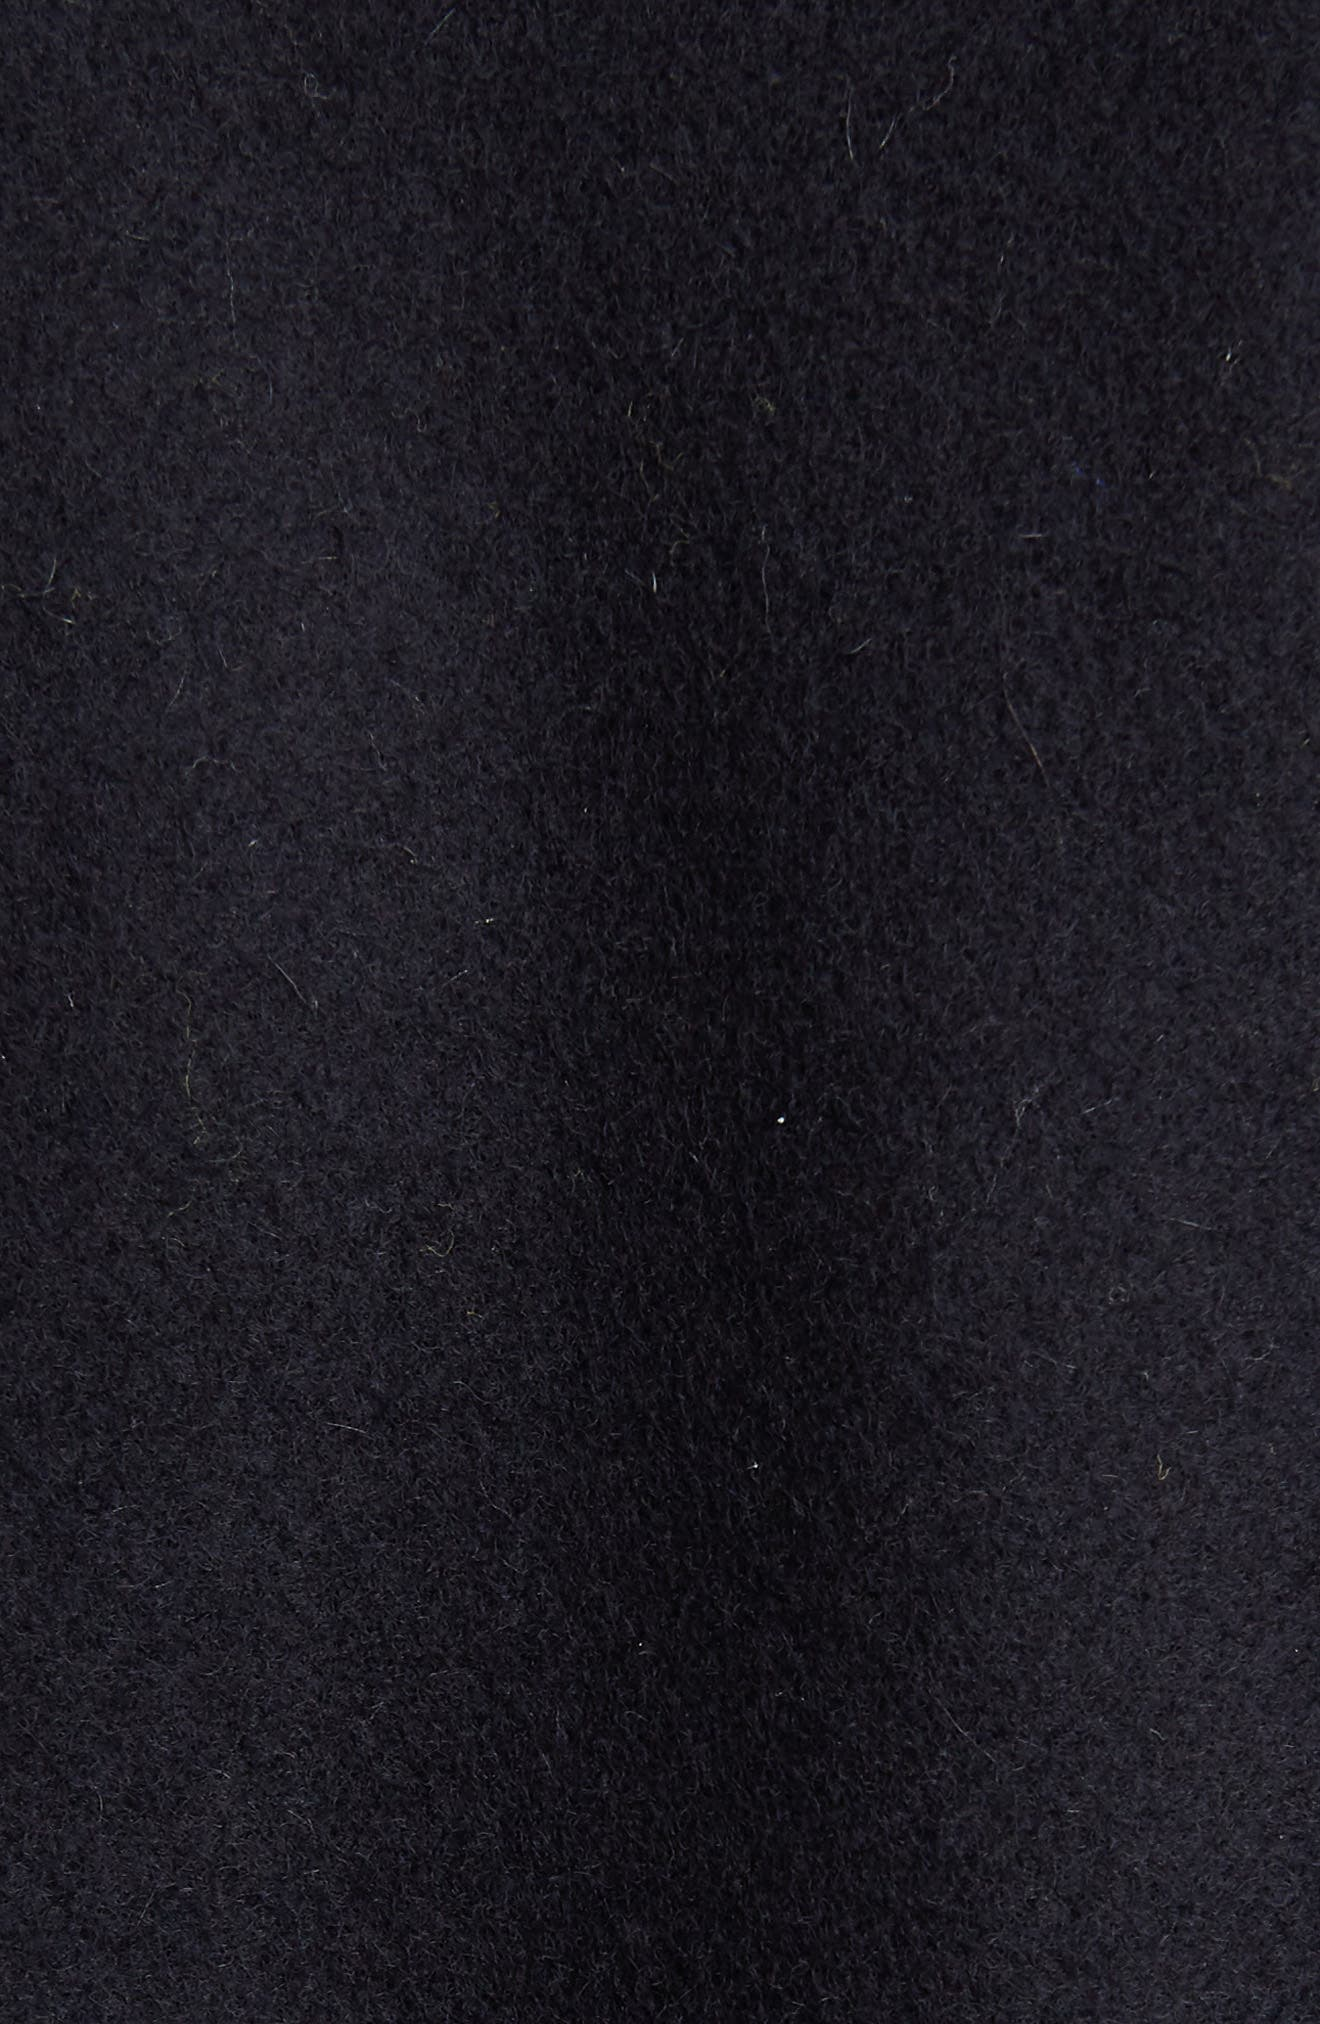 Ostrich Feather Trim Wool Blend Reefer Coat,                             Alternate thumbnail 5, color,                             NAVY